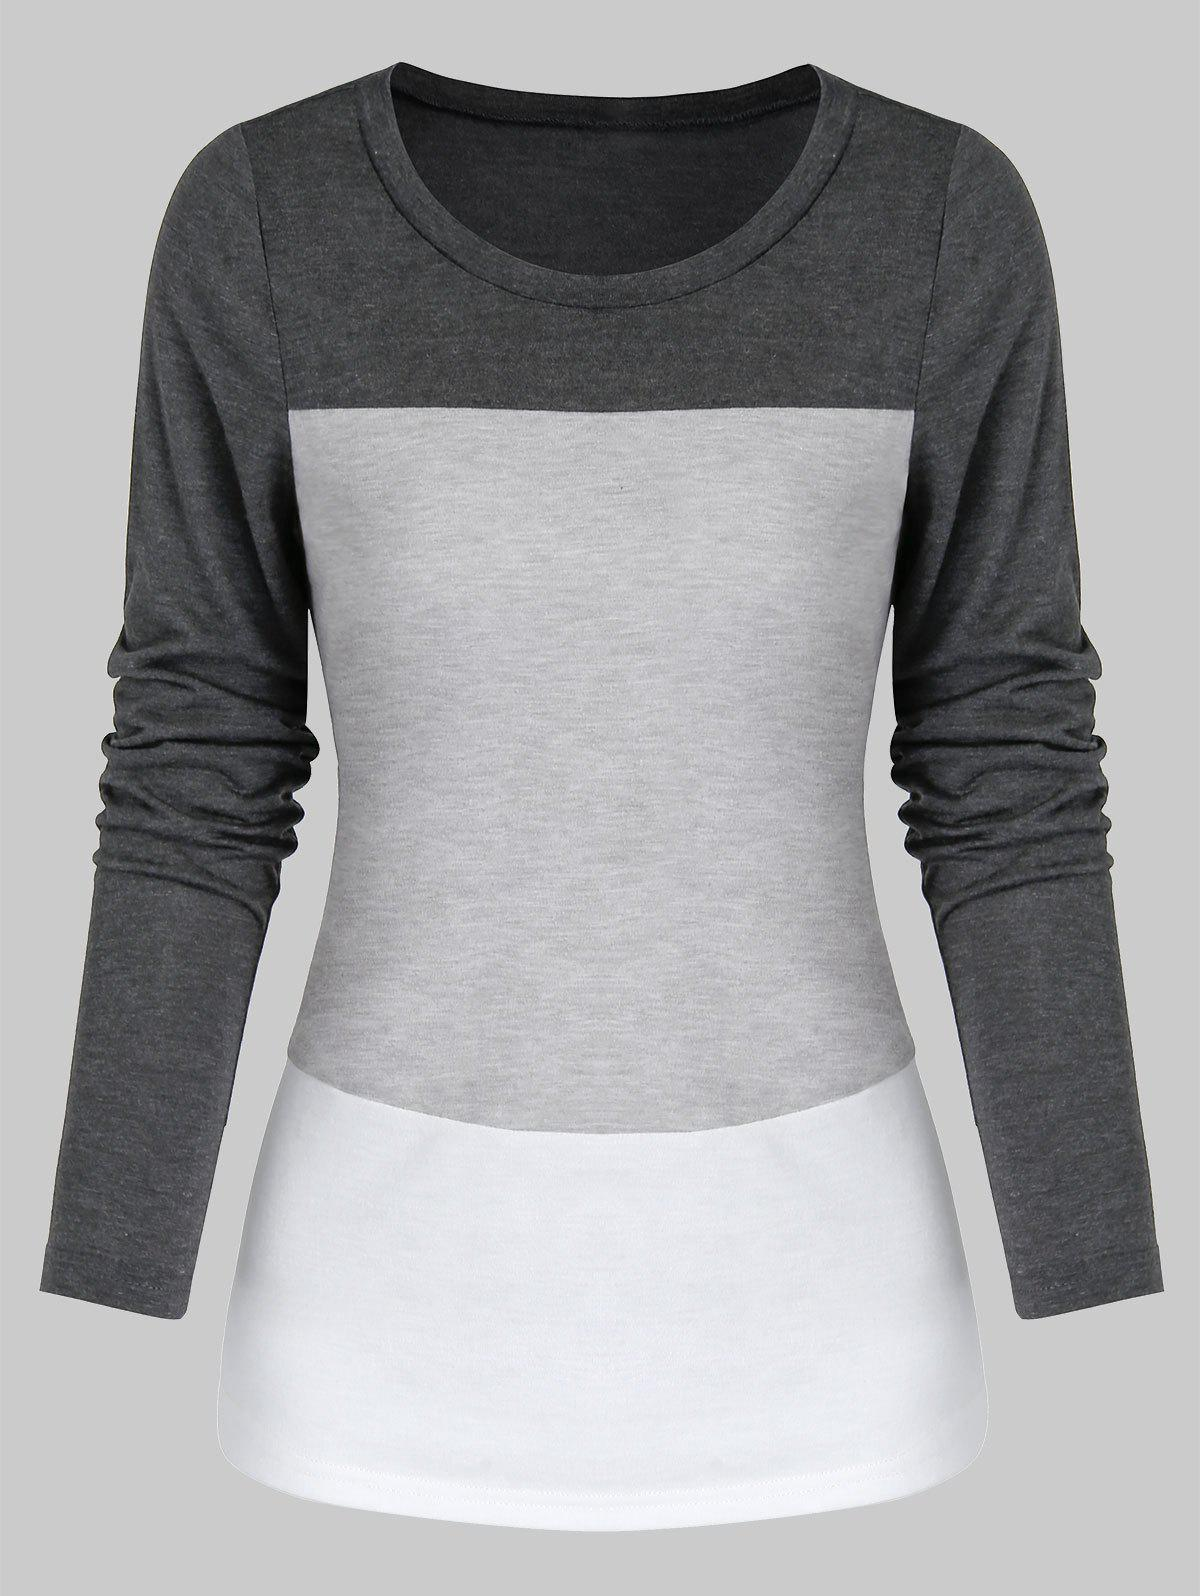 rosegal Contrast Long Sleeve Heathered T-shirt